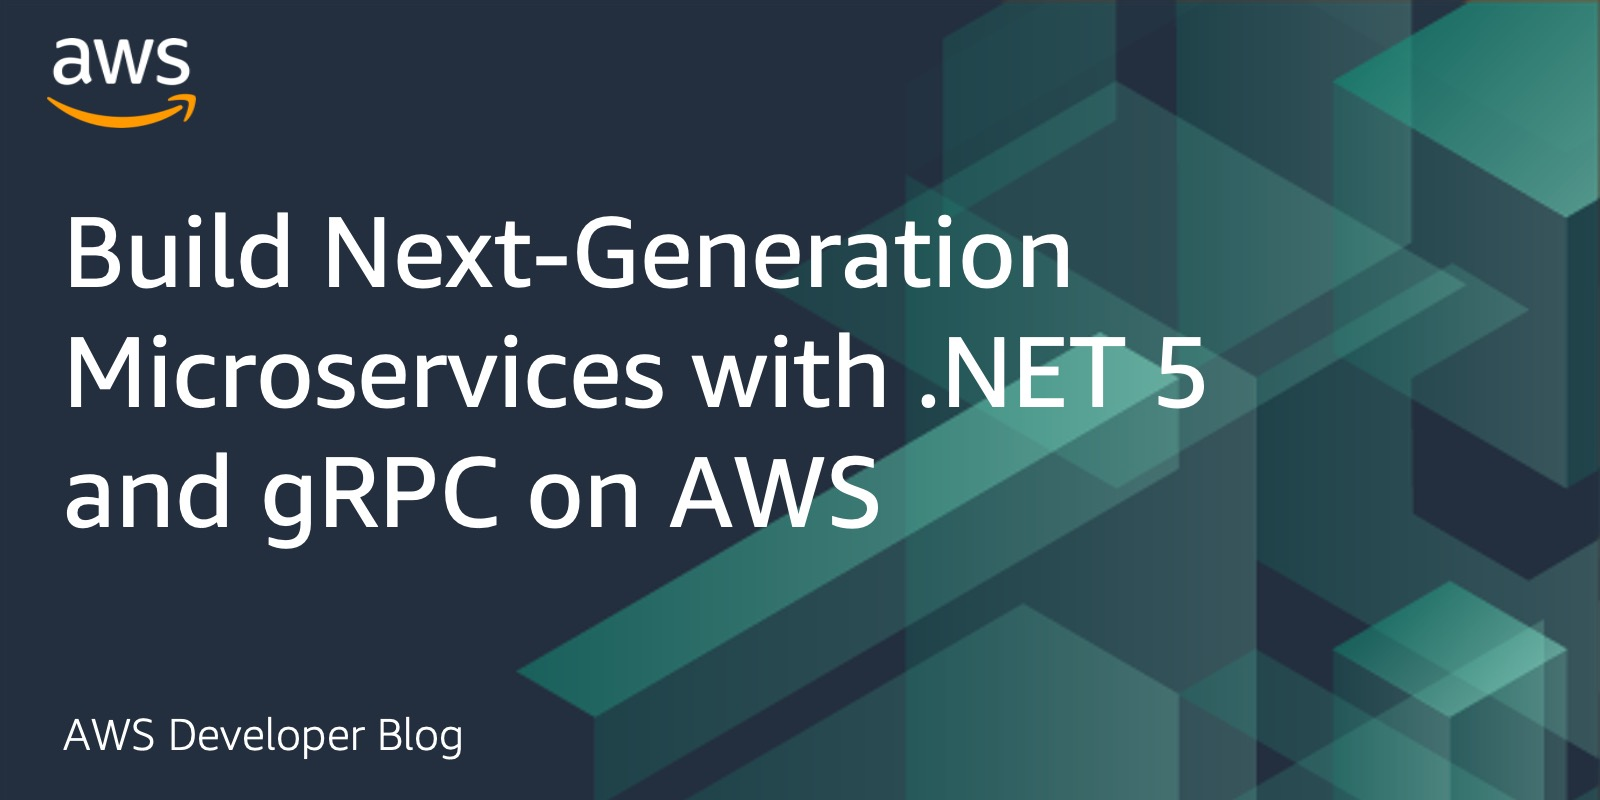 Build Next-Generation Microservices with .NET 5 and gRPC on AWS | Amazon Web Services